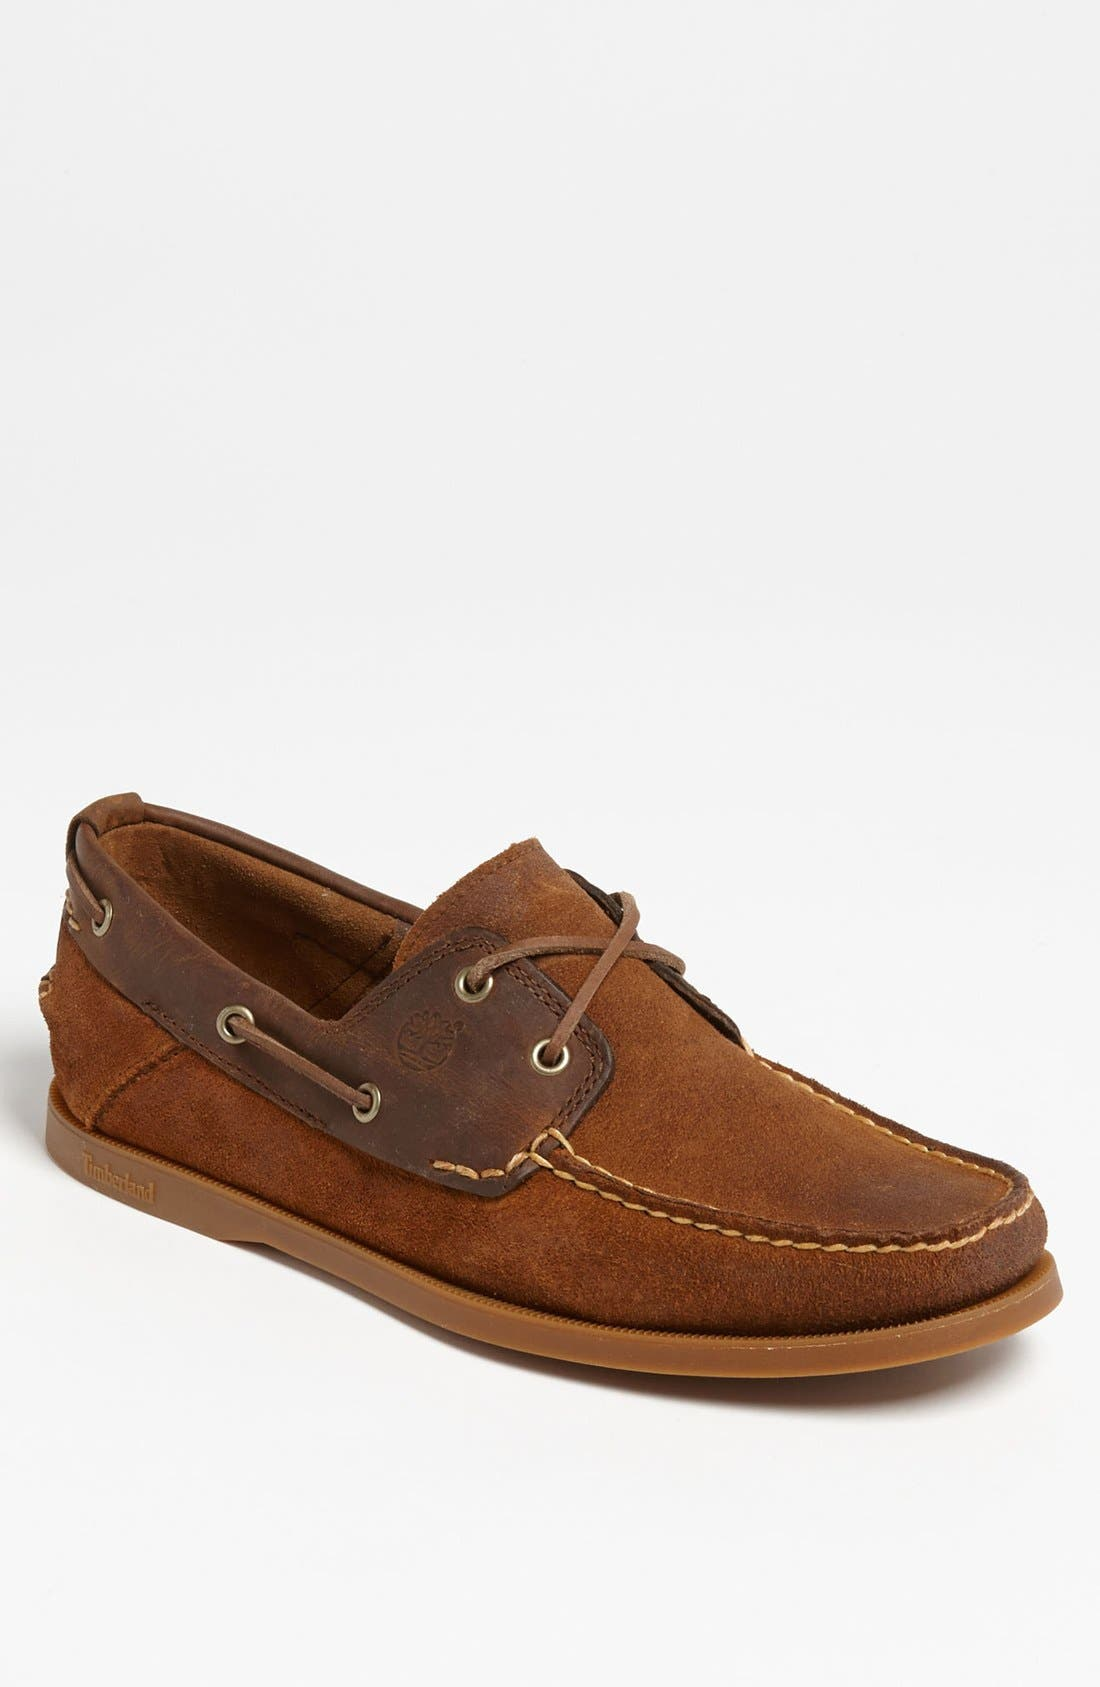 Earthkeepers<sup>®</sup> 'Heritage' Boat Shoe, Main, color, 210